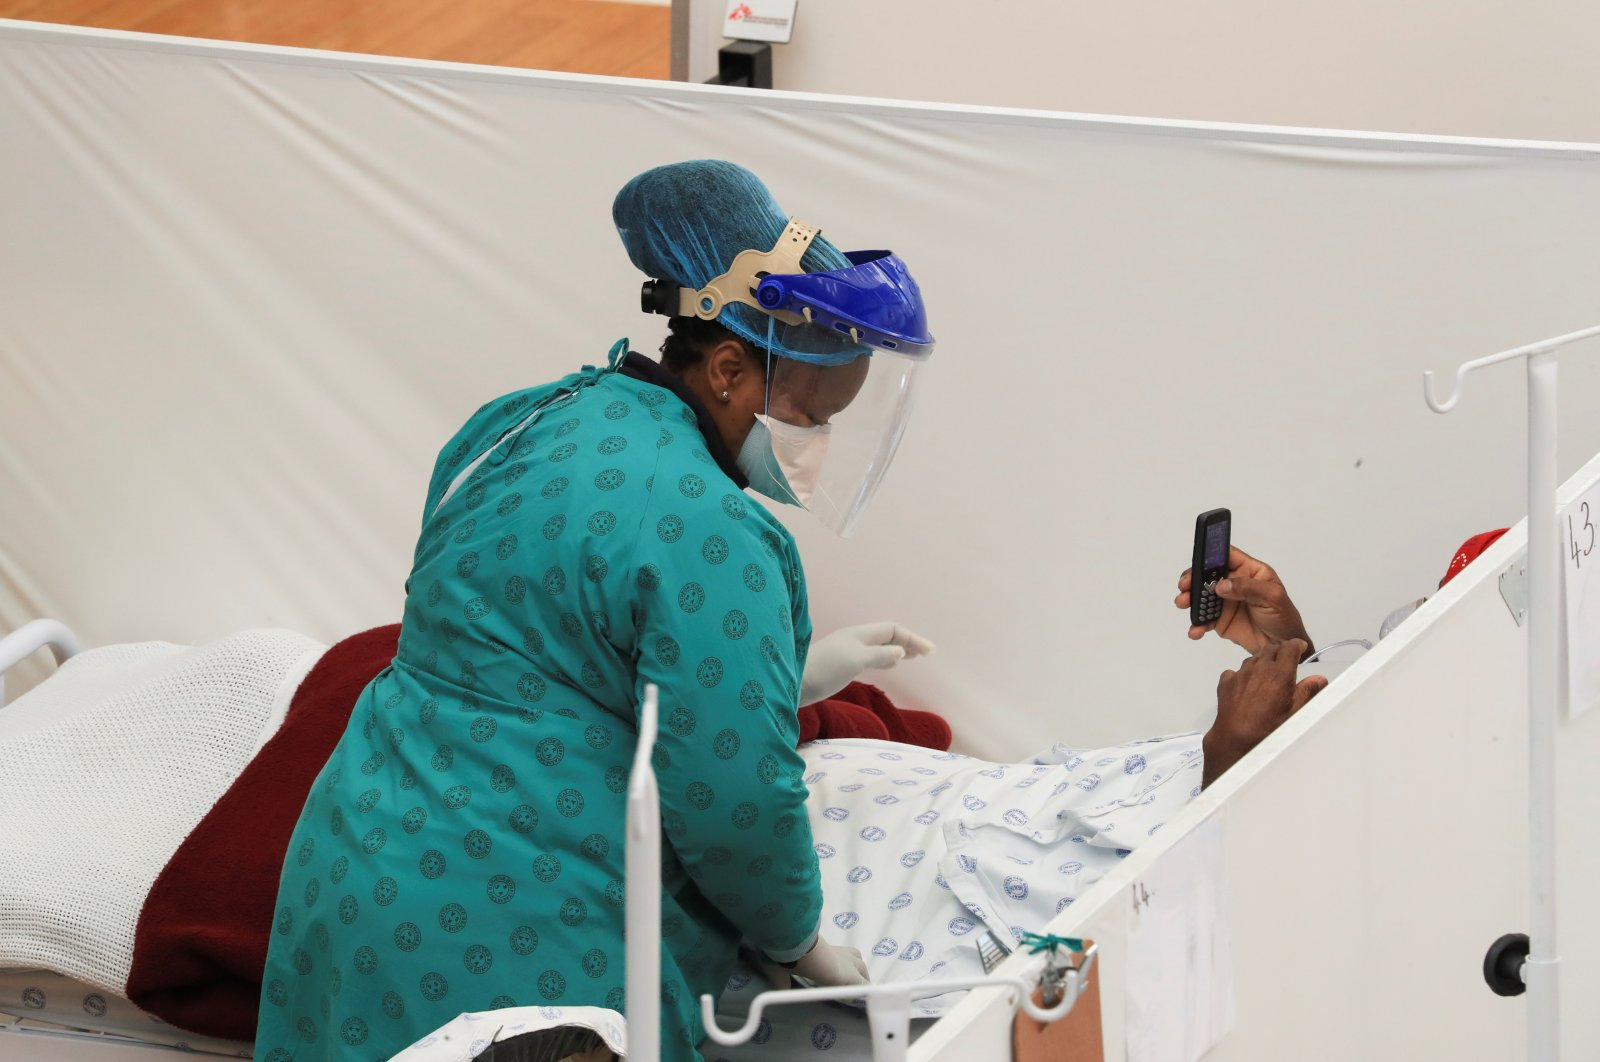 A health worker treats a patient at a temporary field hospital set up by Medecins Sans Frontieres (MSF) during the COVID-19 outbreak in Khayelitsha township near Cape Town, South Africa, July 21, 2020. (Reuters Photo)